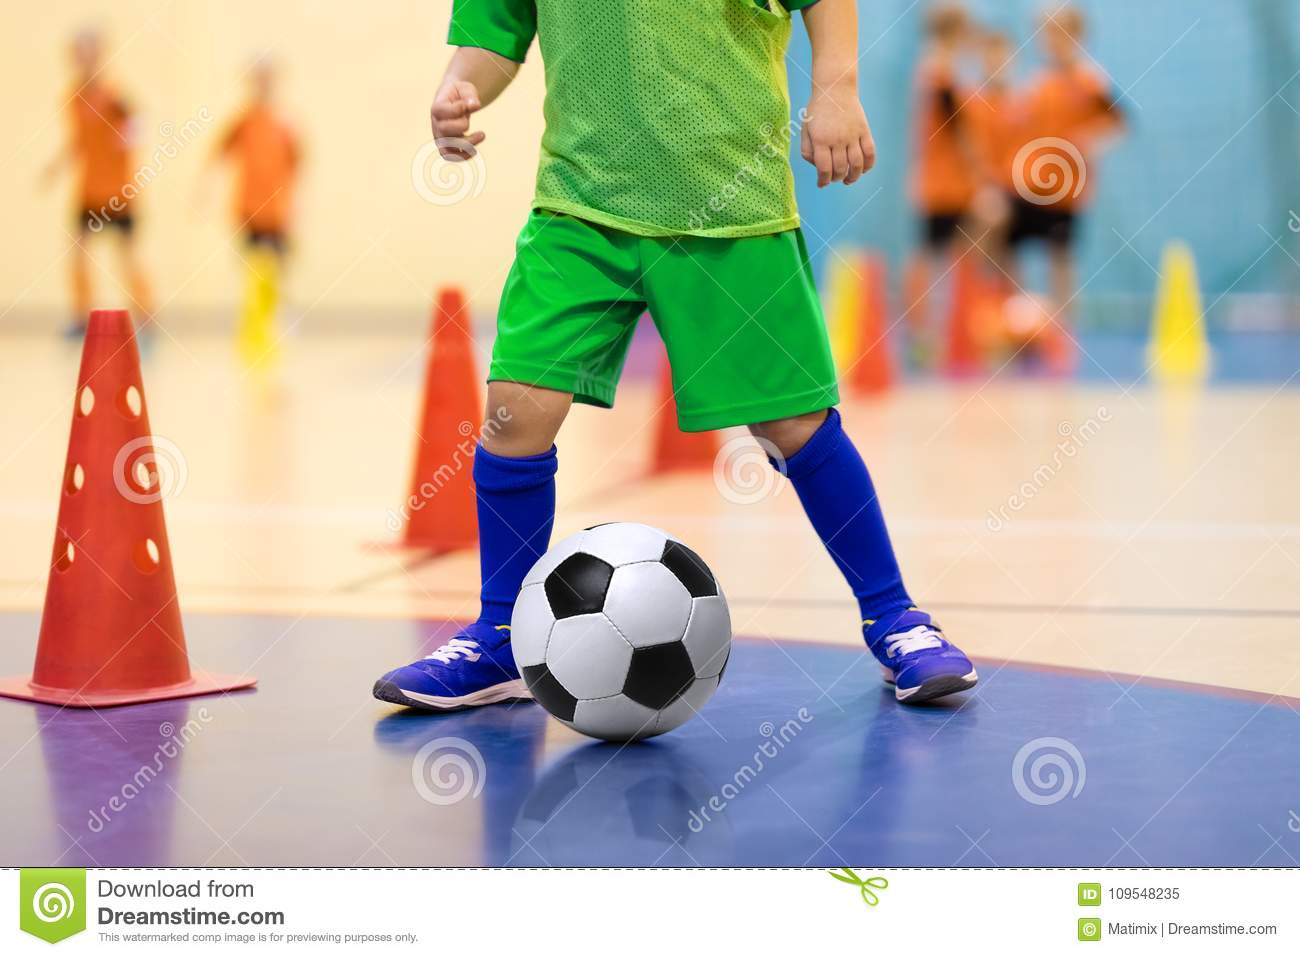 Indoor soccer young player with a soccer ball in a sports hall. Player in green uniform. Sport background.